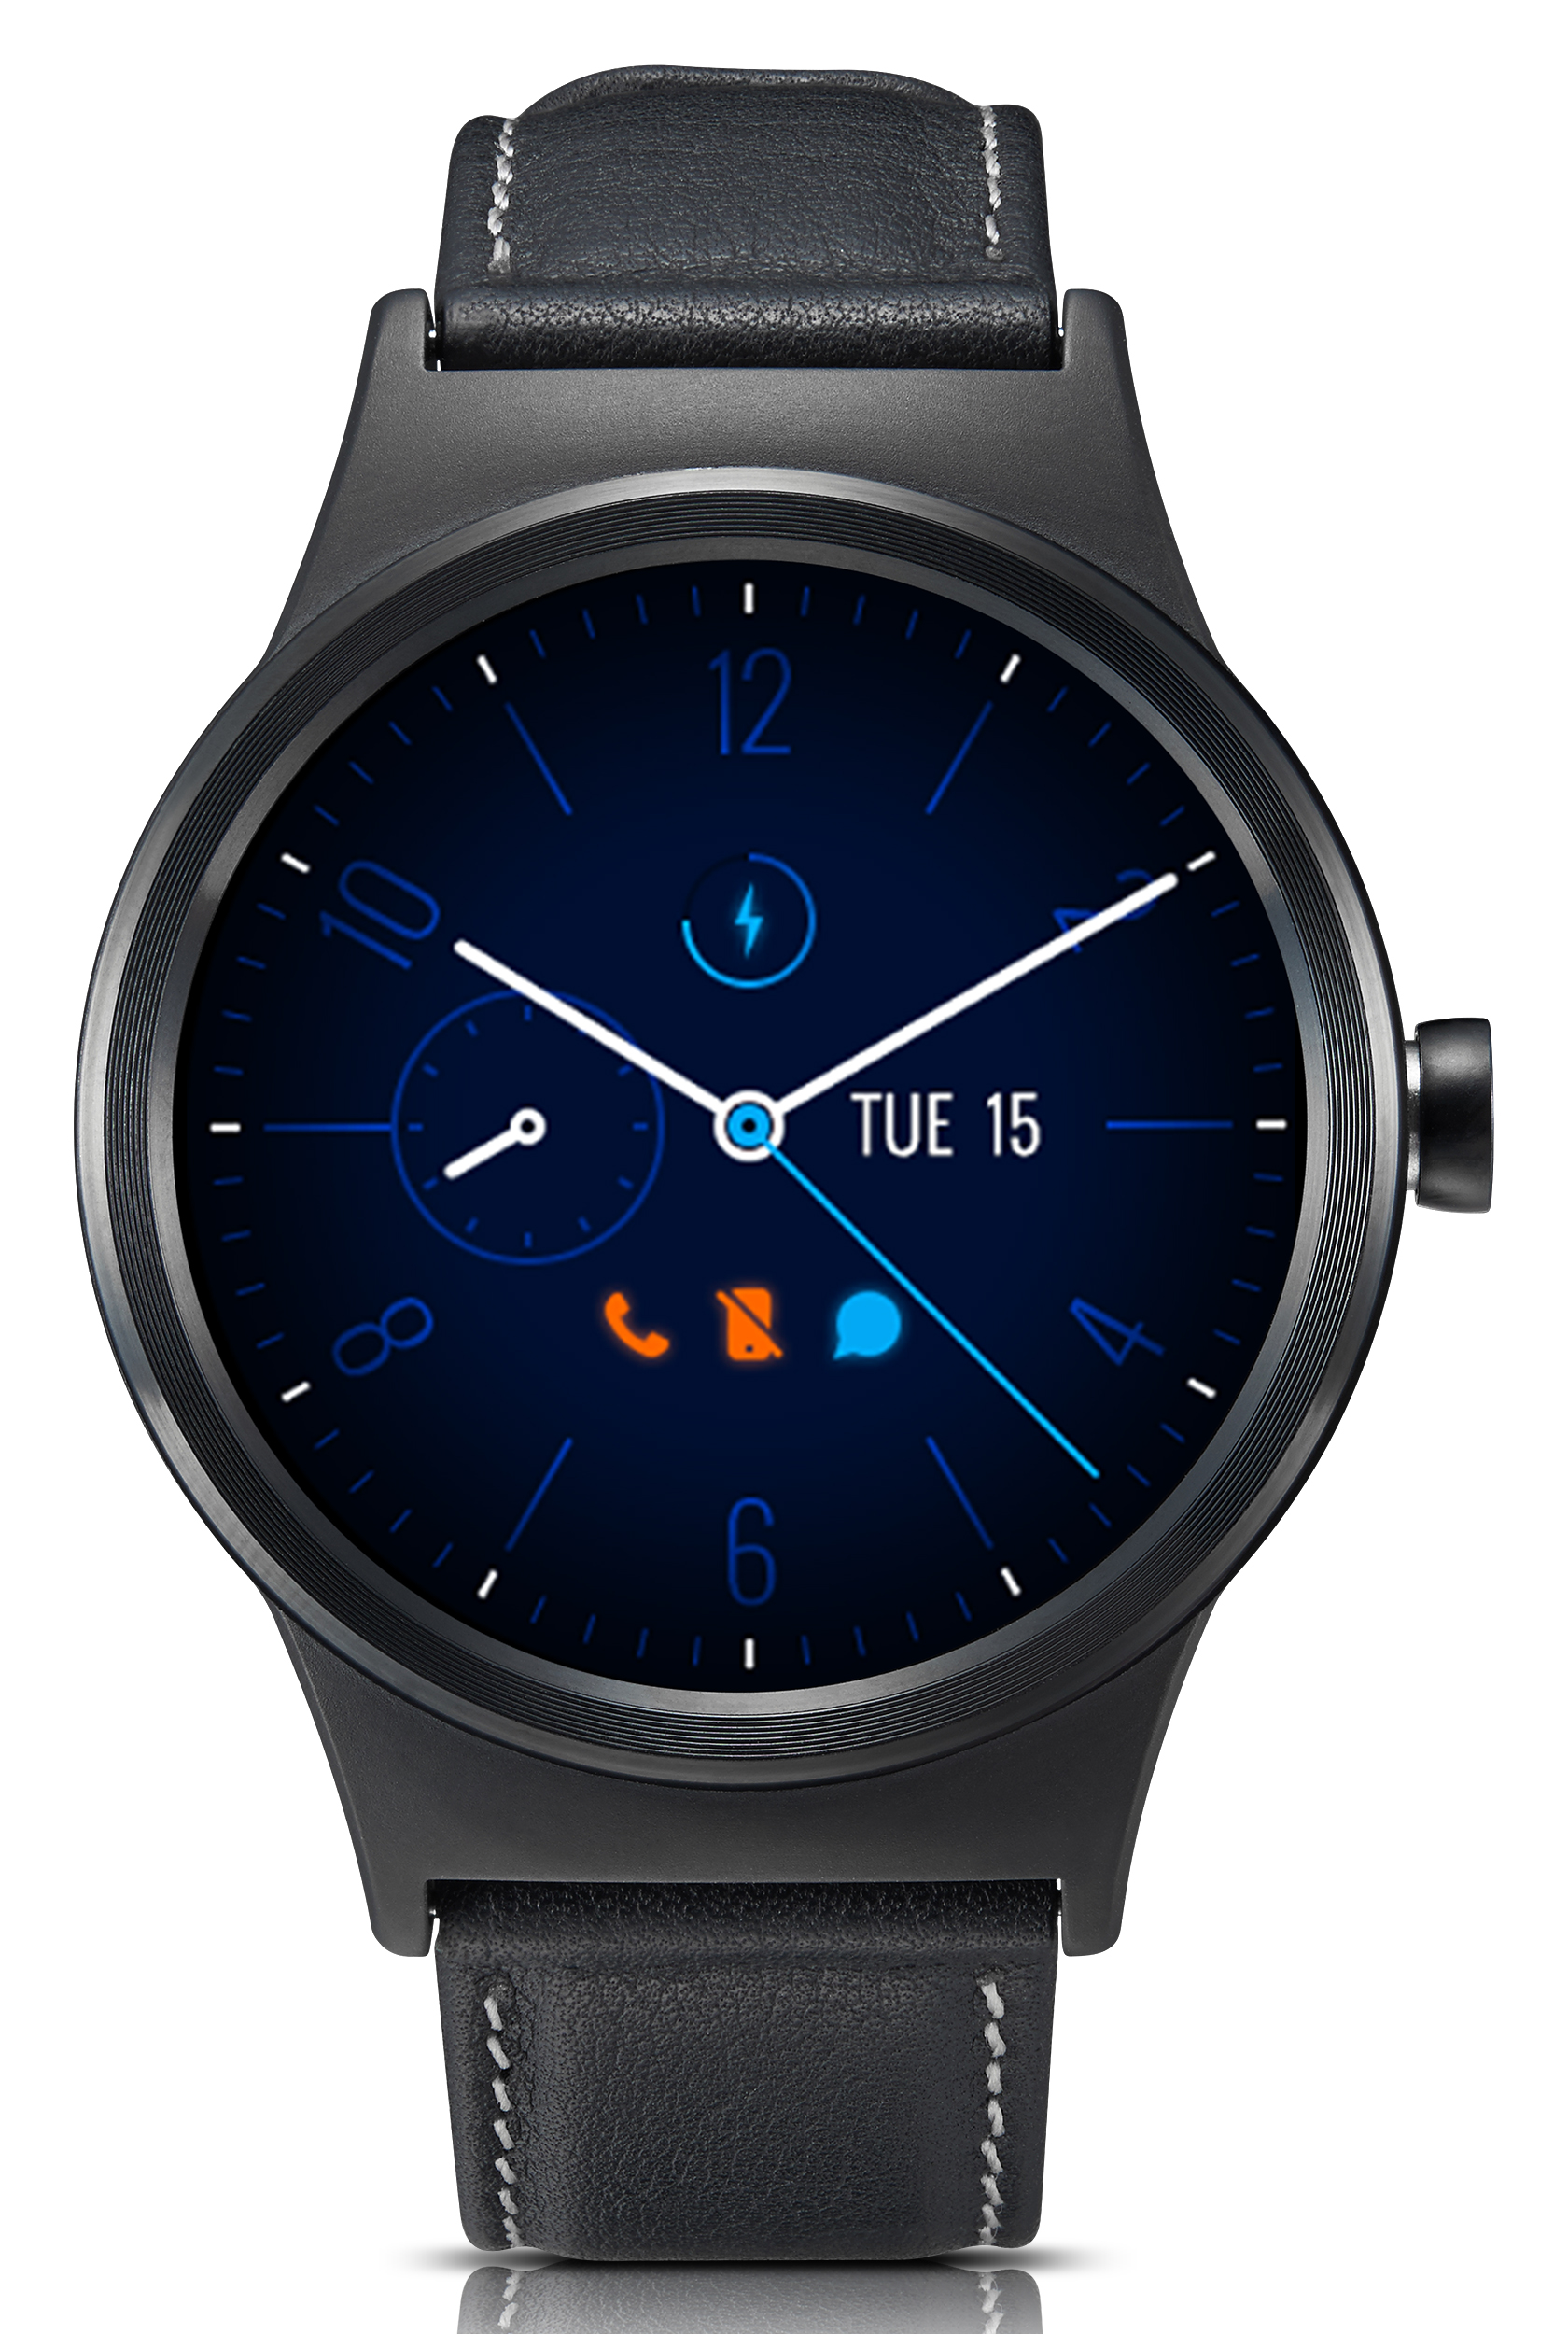 TCL MOVETIME Smartwatch, Leather, Black/Black